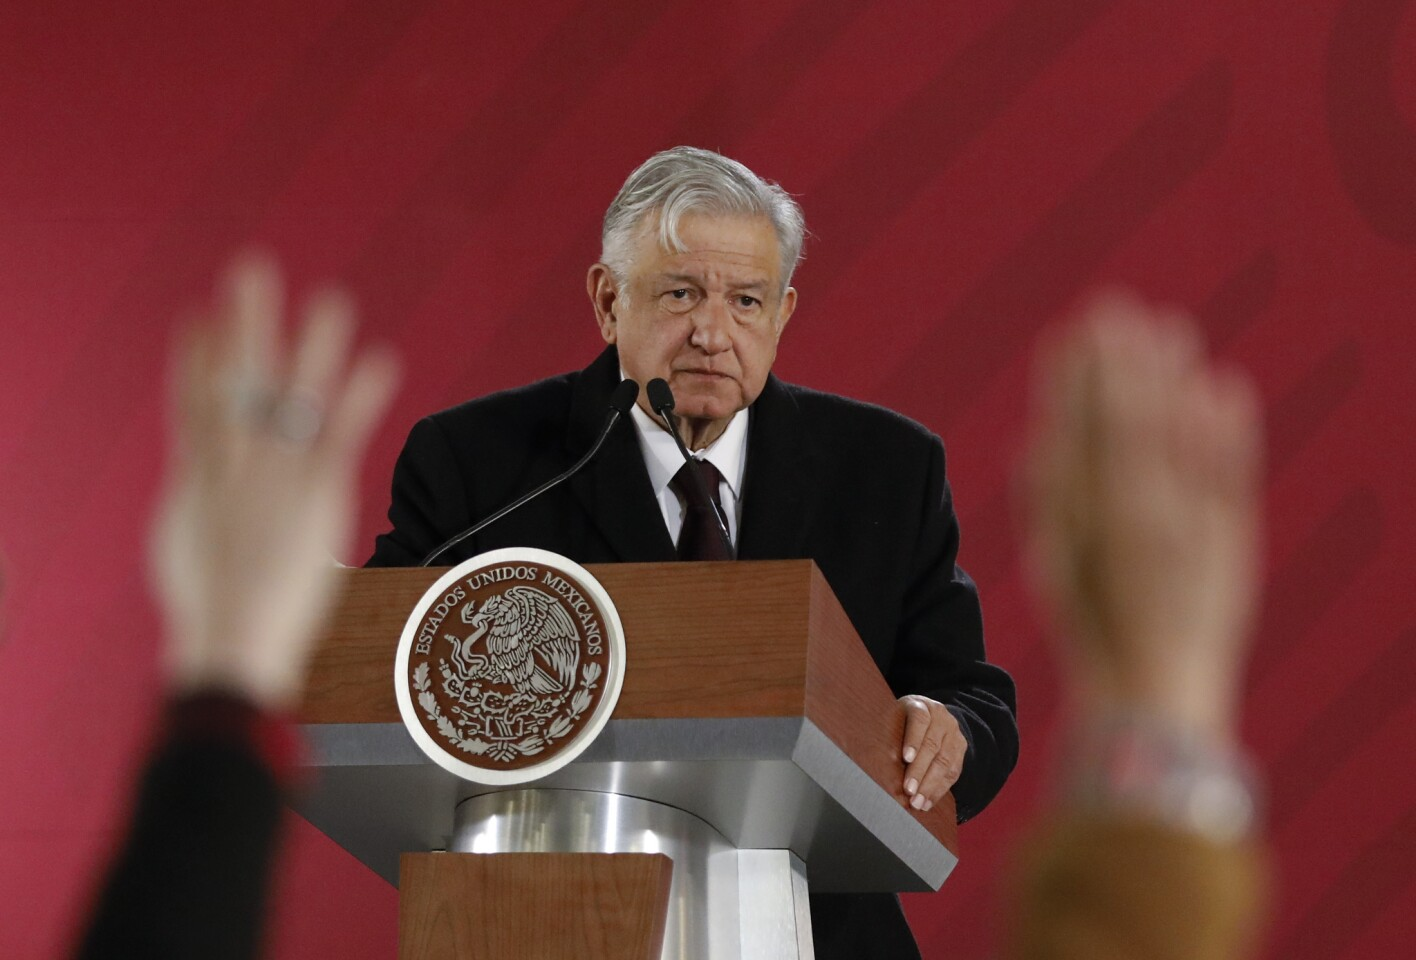 At a news conference Jan. 9, Mexican President Andres Manuel Lopez Obrador issued an emotional appeal to his countrymen to help battle against fuel thefts.